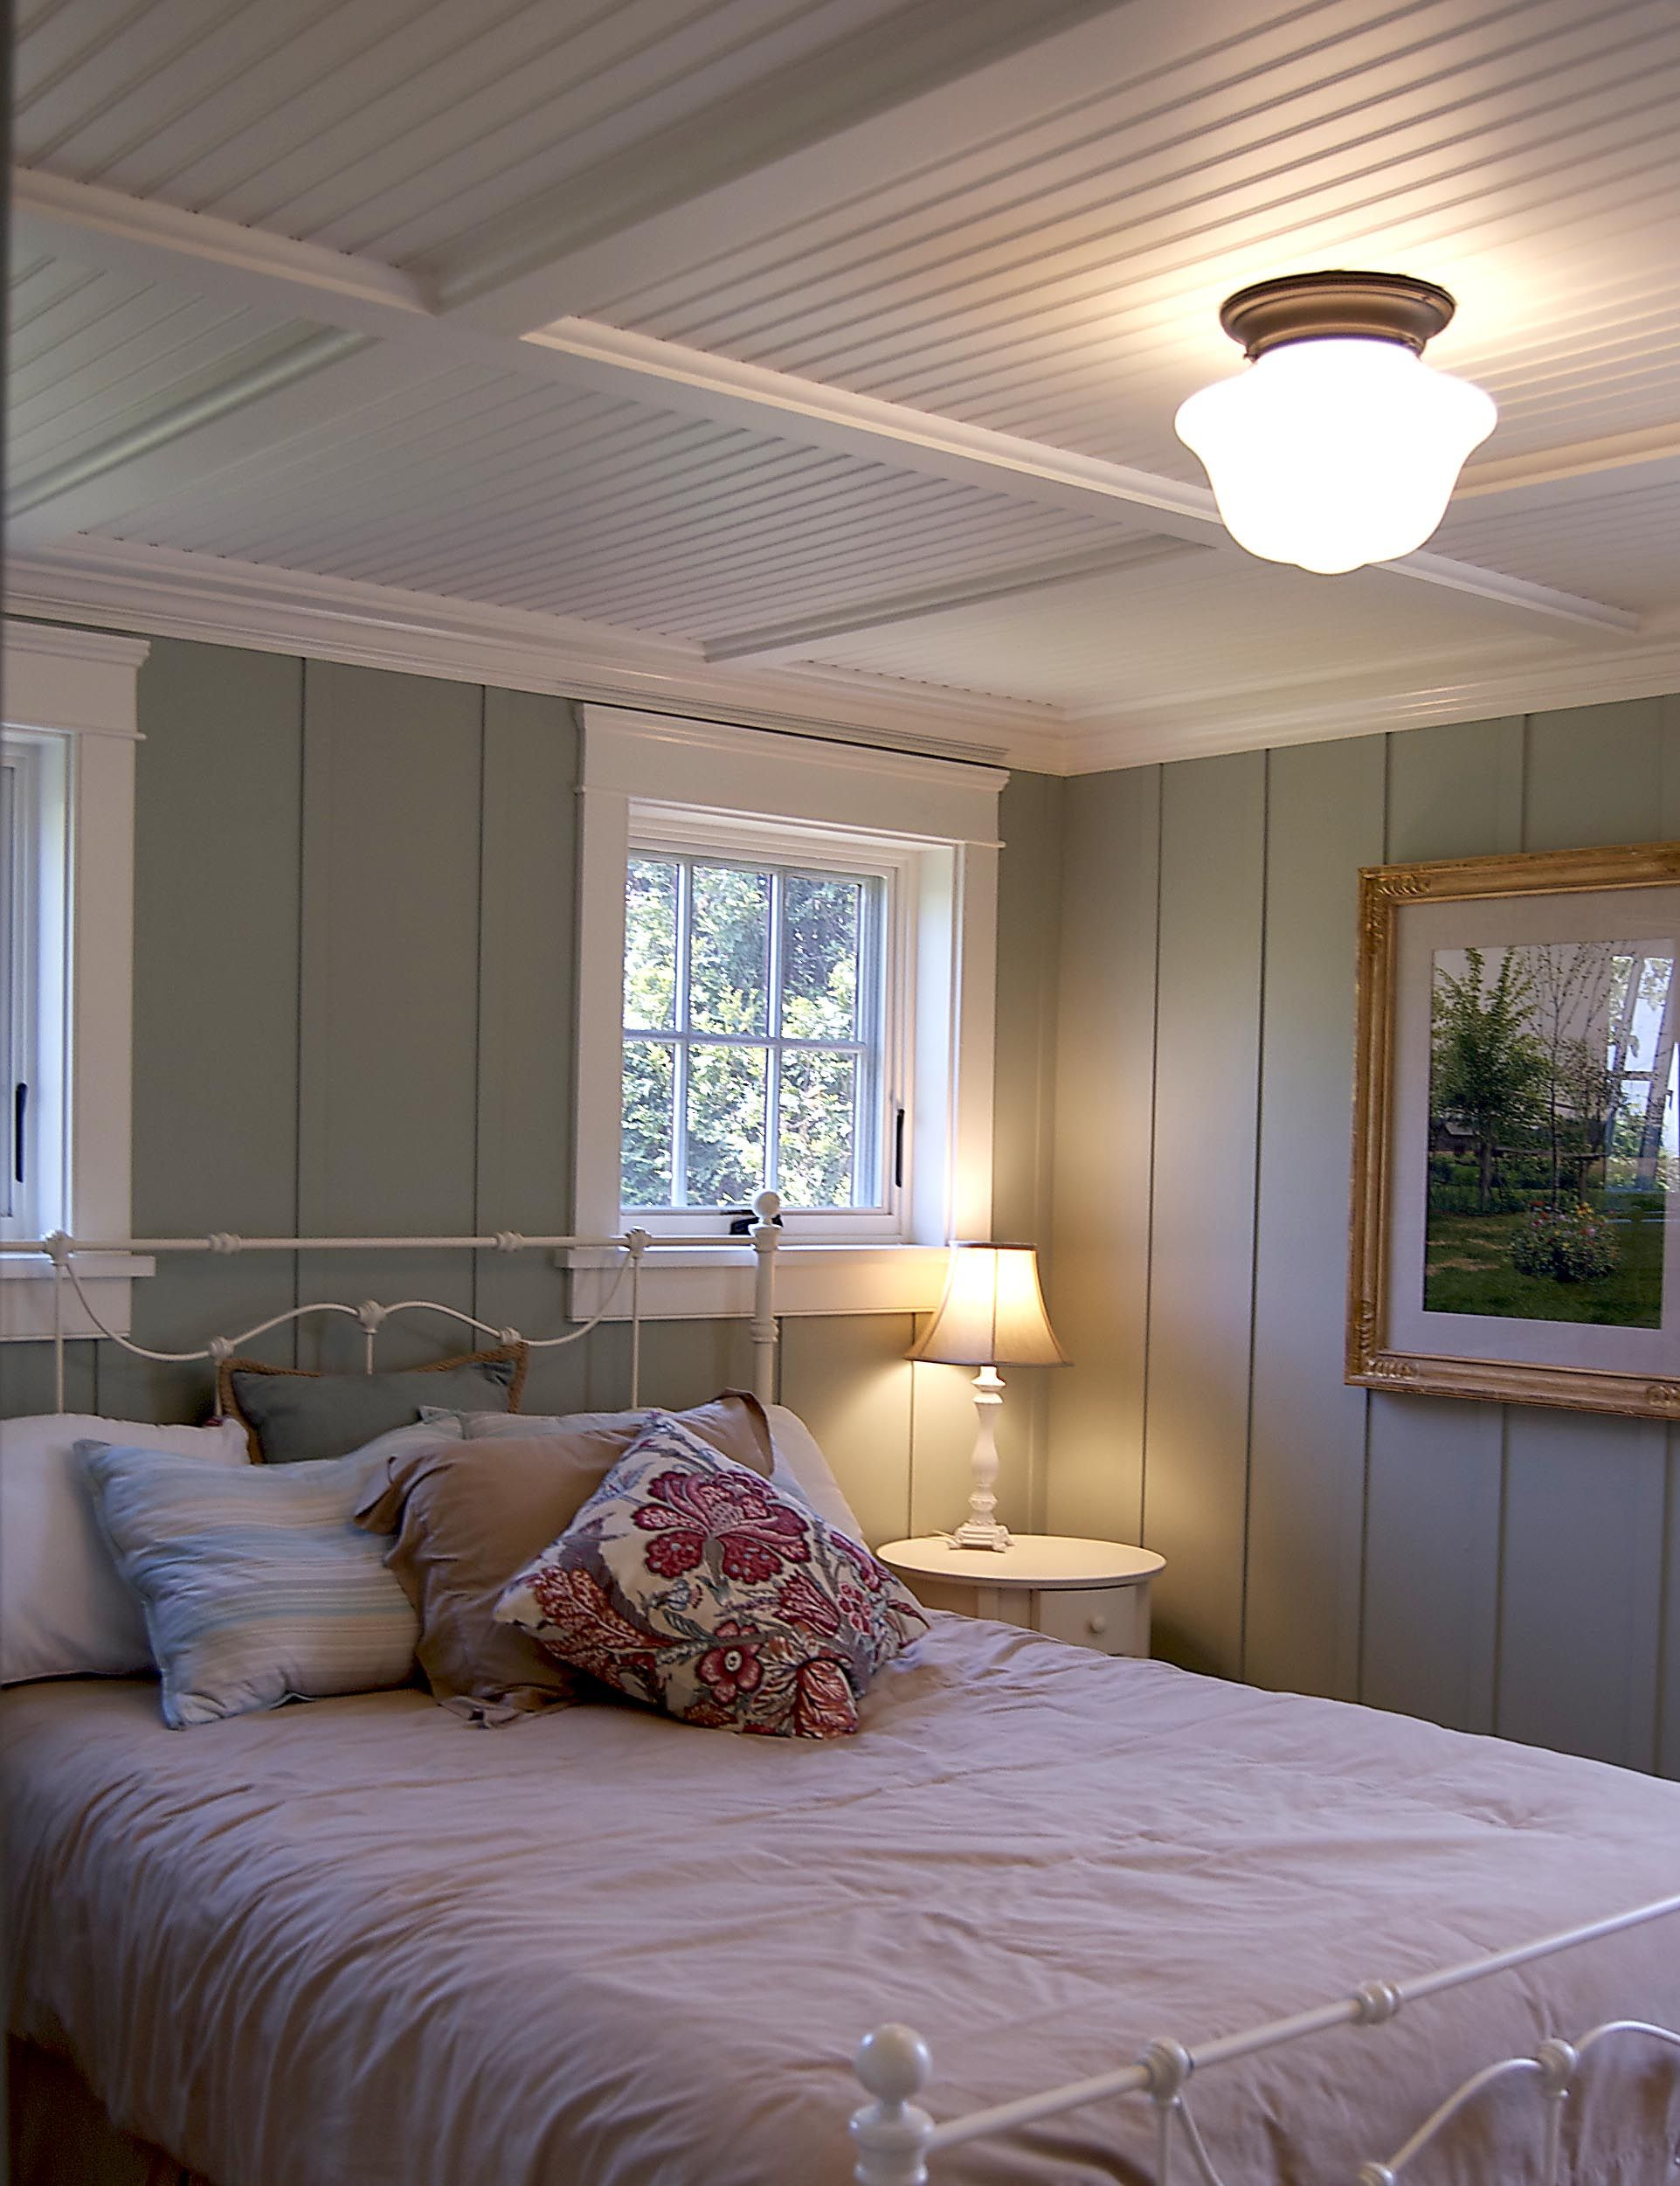 Interior Wood Paneling: Gulfshoredesign.com Cottage Bedroom With Floor To Ceiling